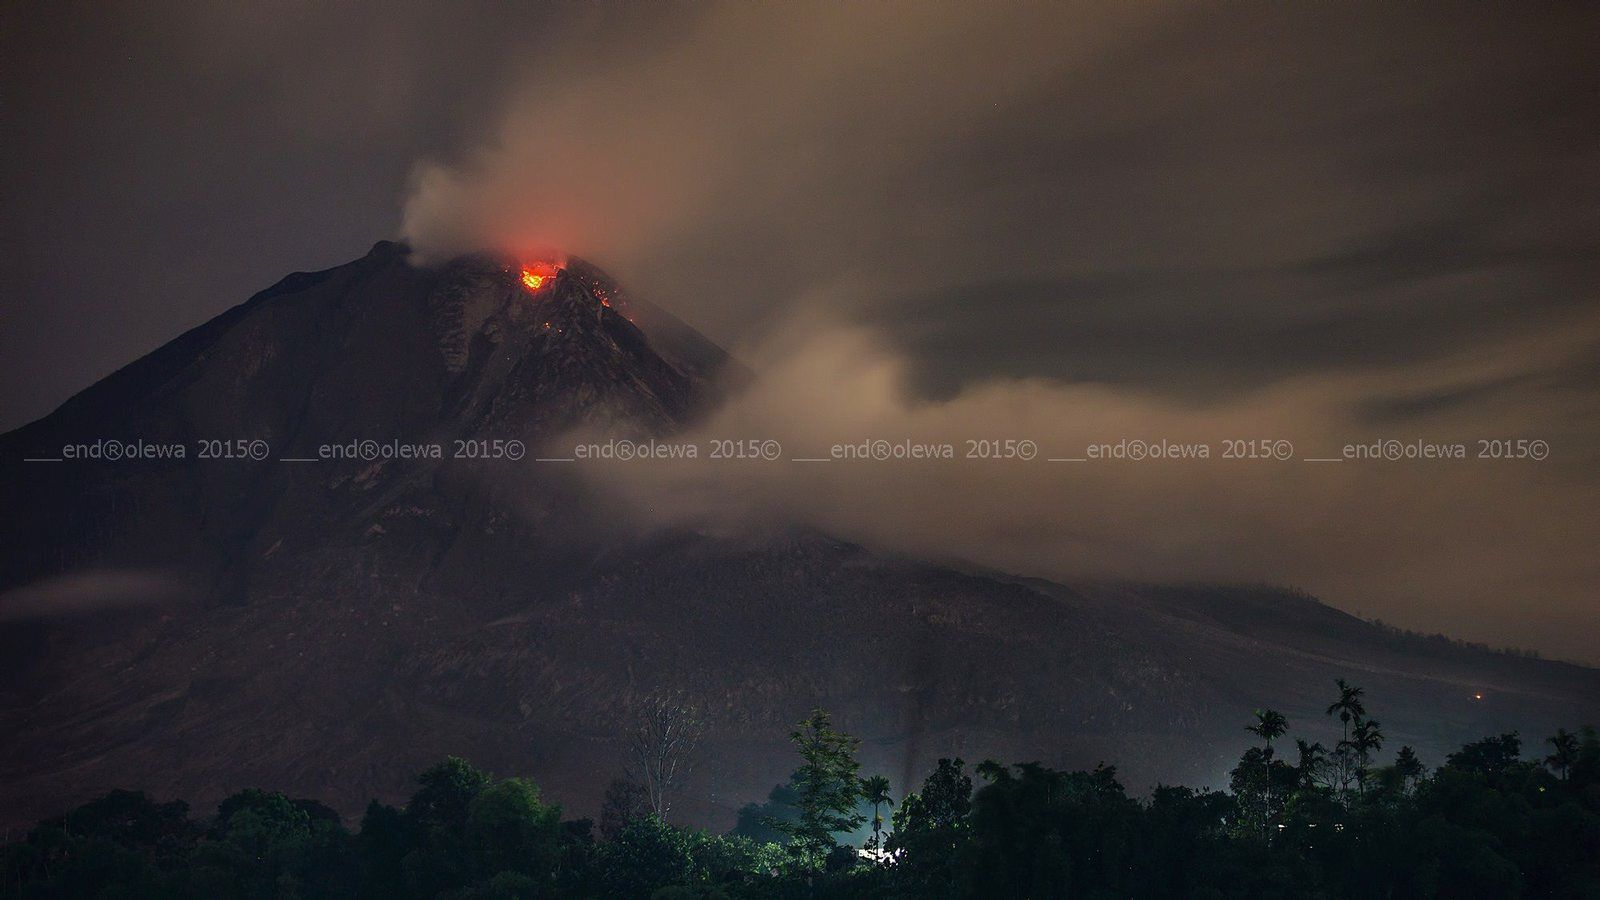 Sinabung - 19.07.2015 / 19h59 - photo endrolew@